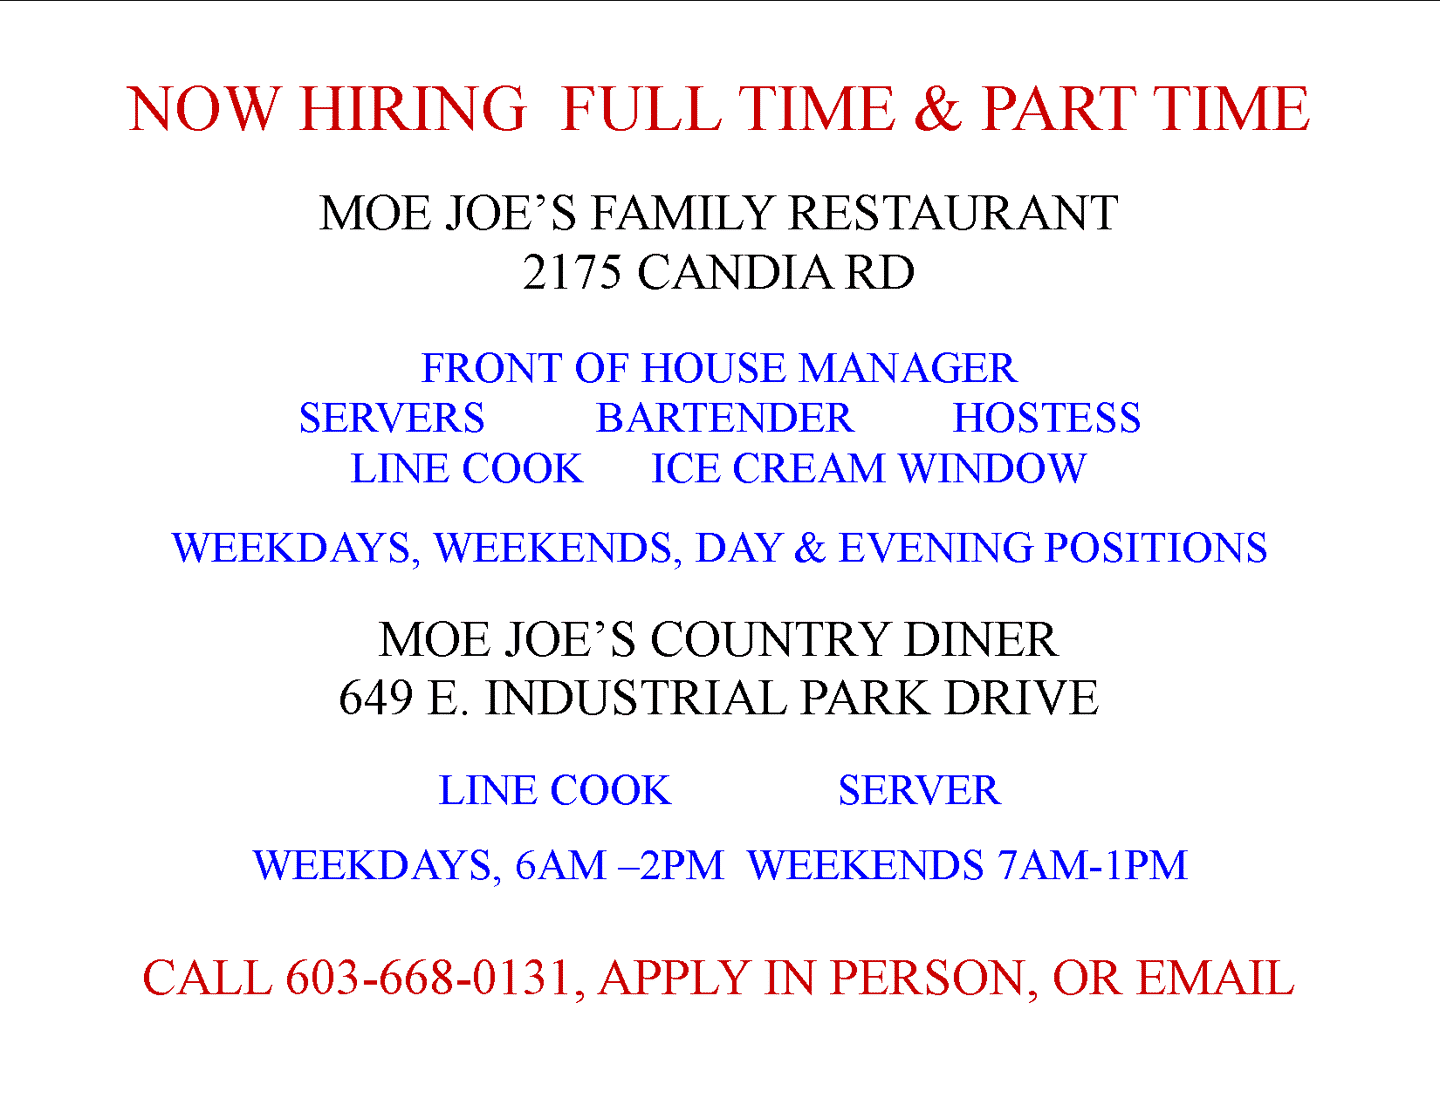 NOW HIRING FULL AND PART TIME POSITIONS!!!